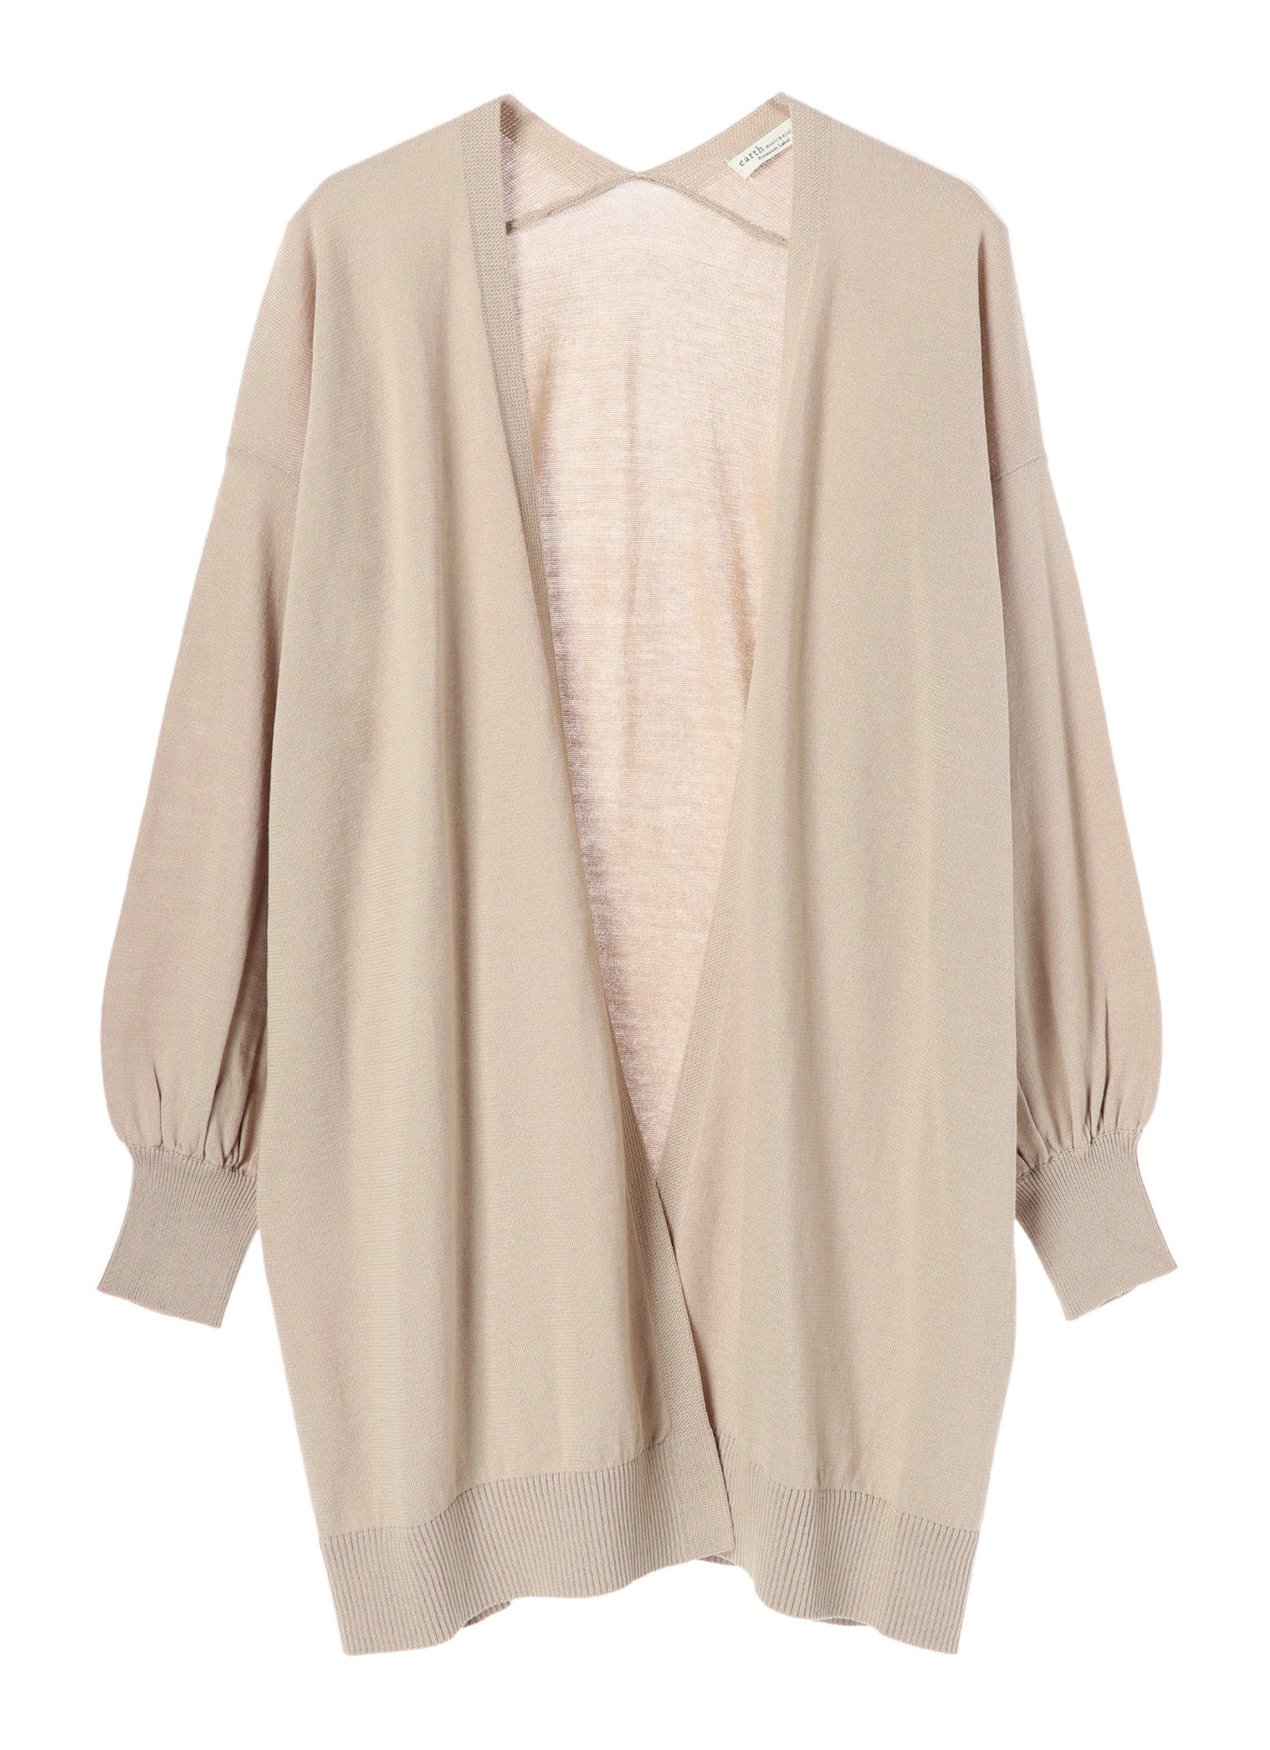 Earth, Music & Ecology Tiana Cardigan - Light Beige